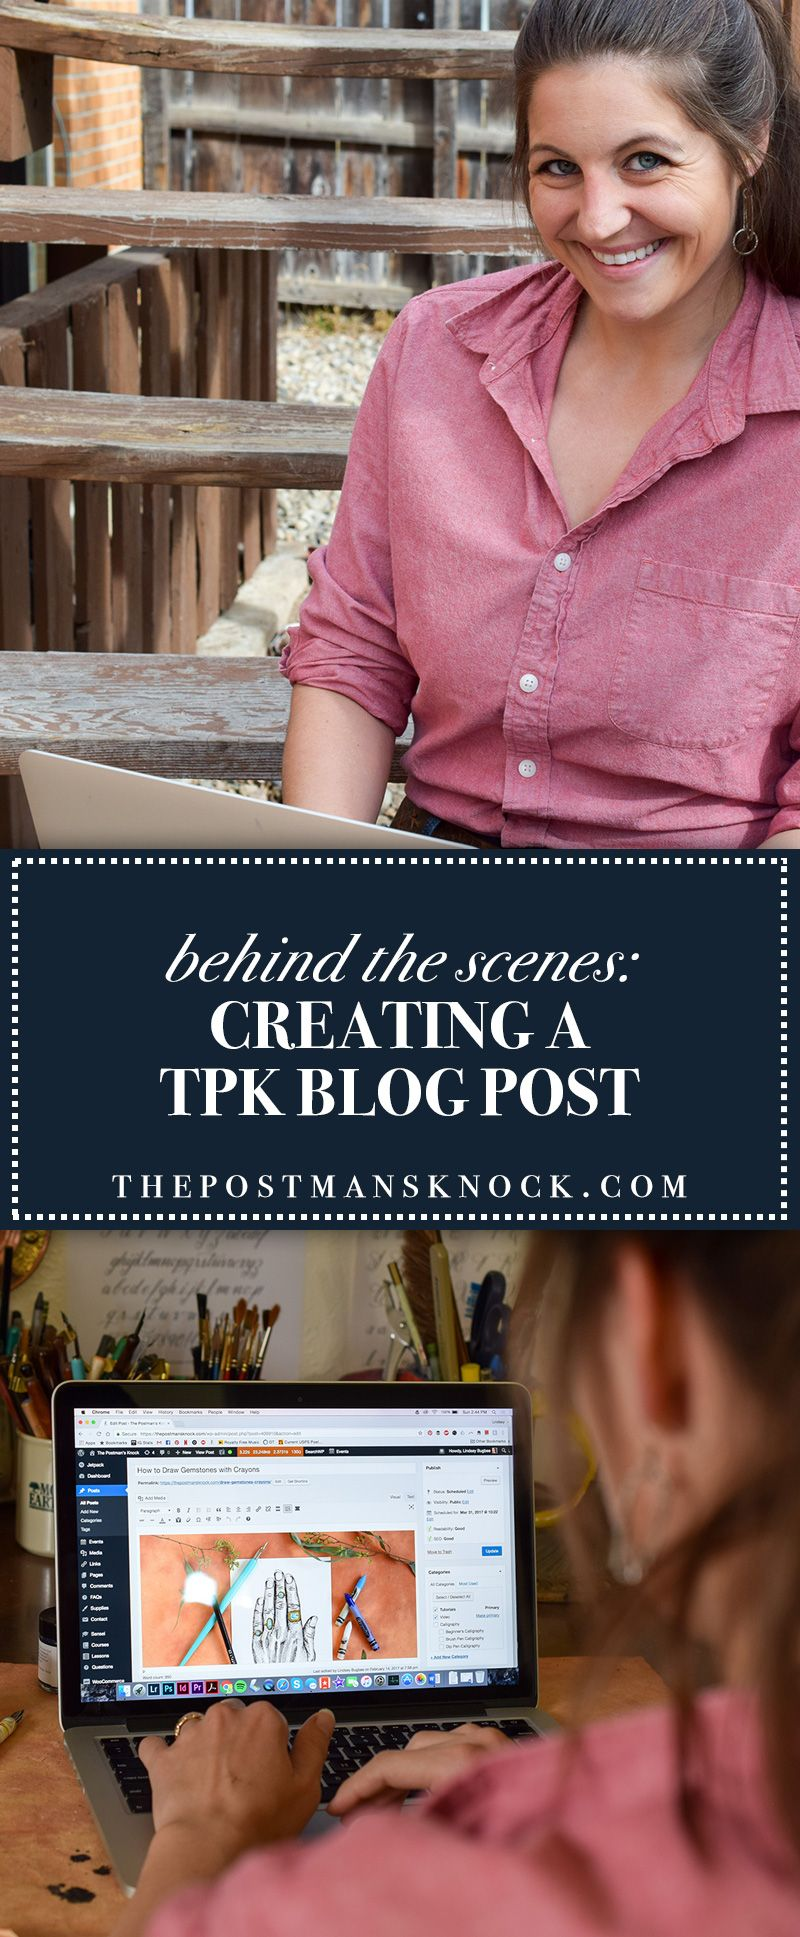 There are a lot of steps behind creating a blog post!